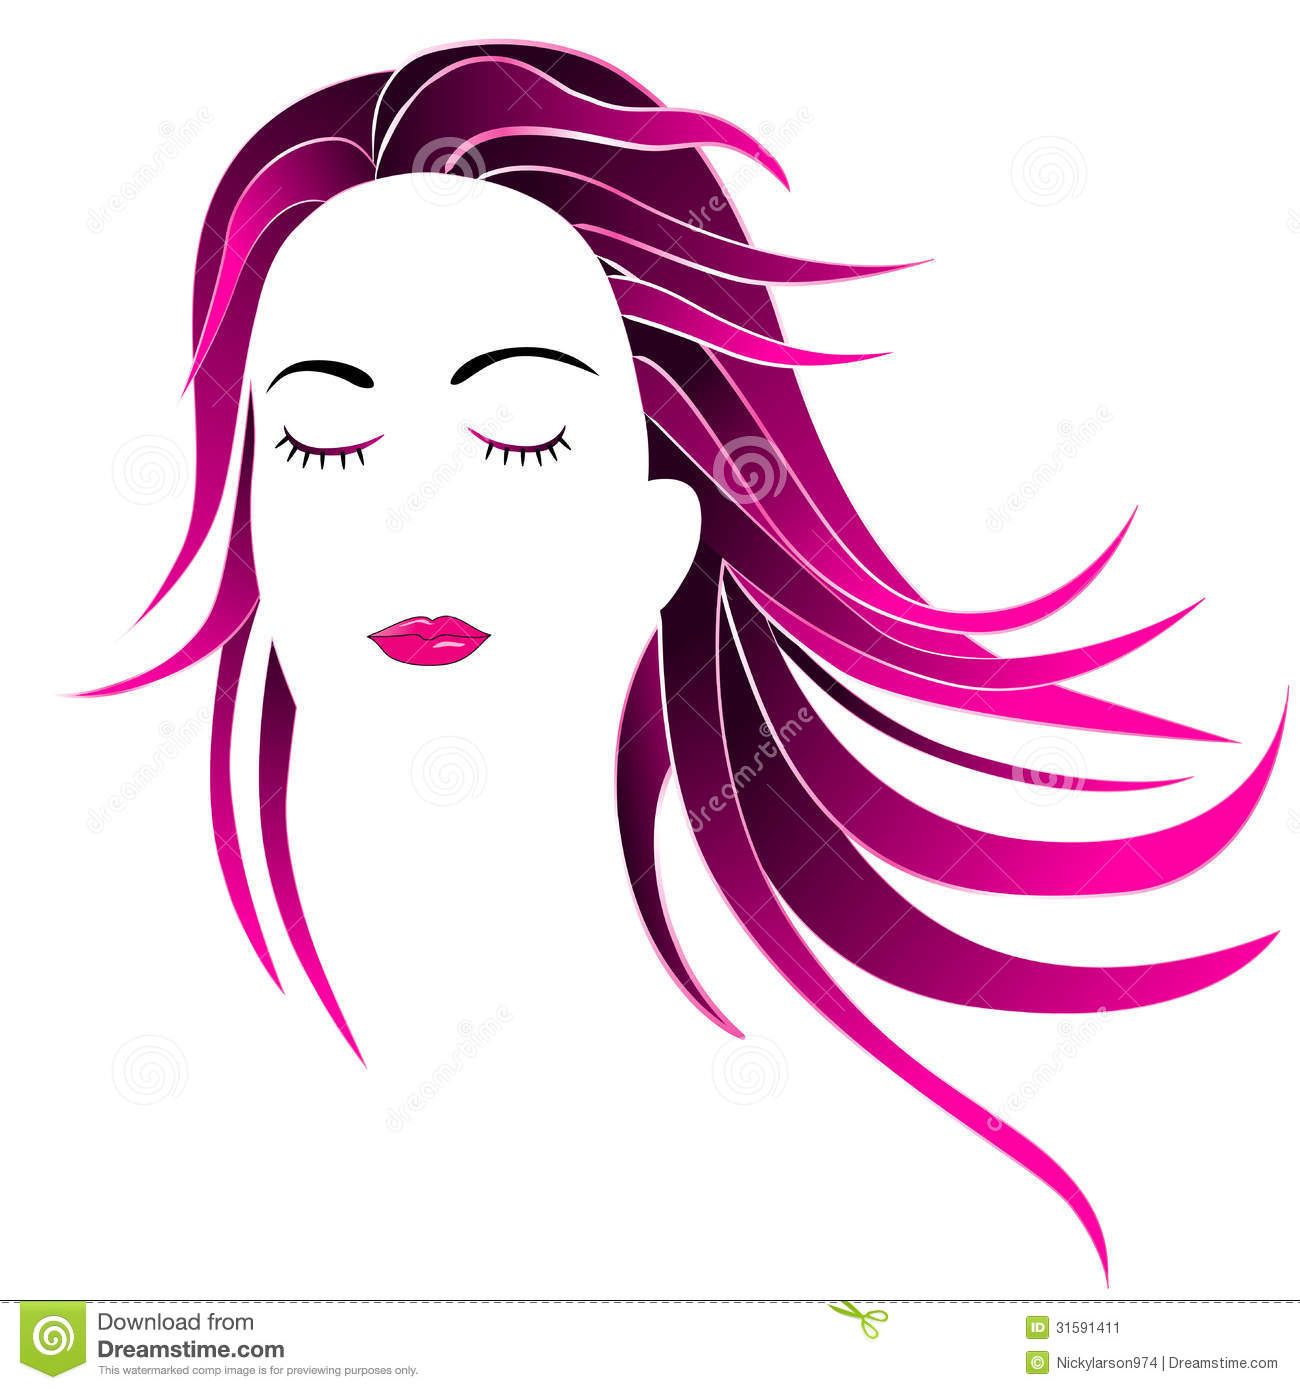 free clipart hairstyles - photo #42